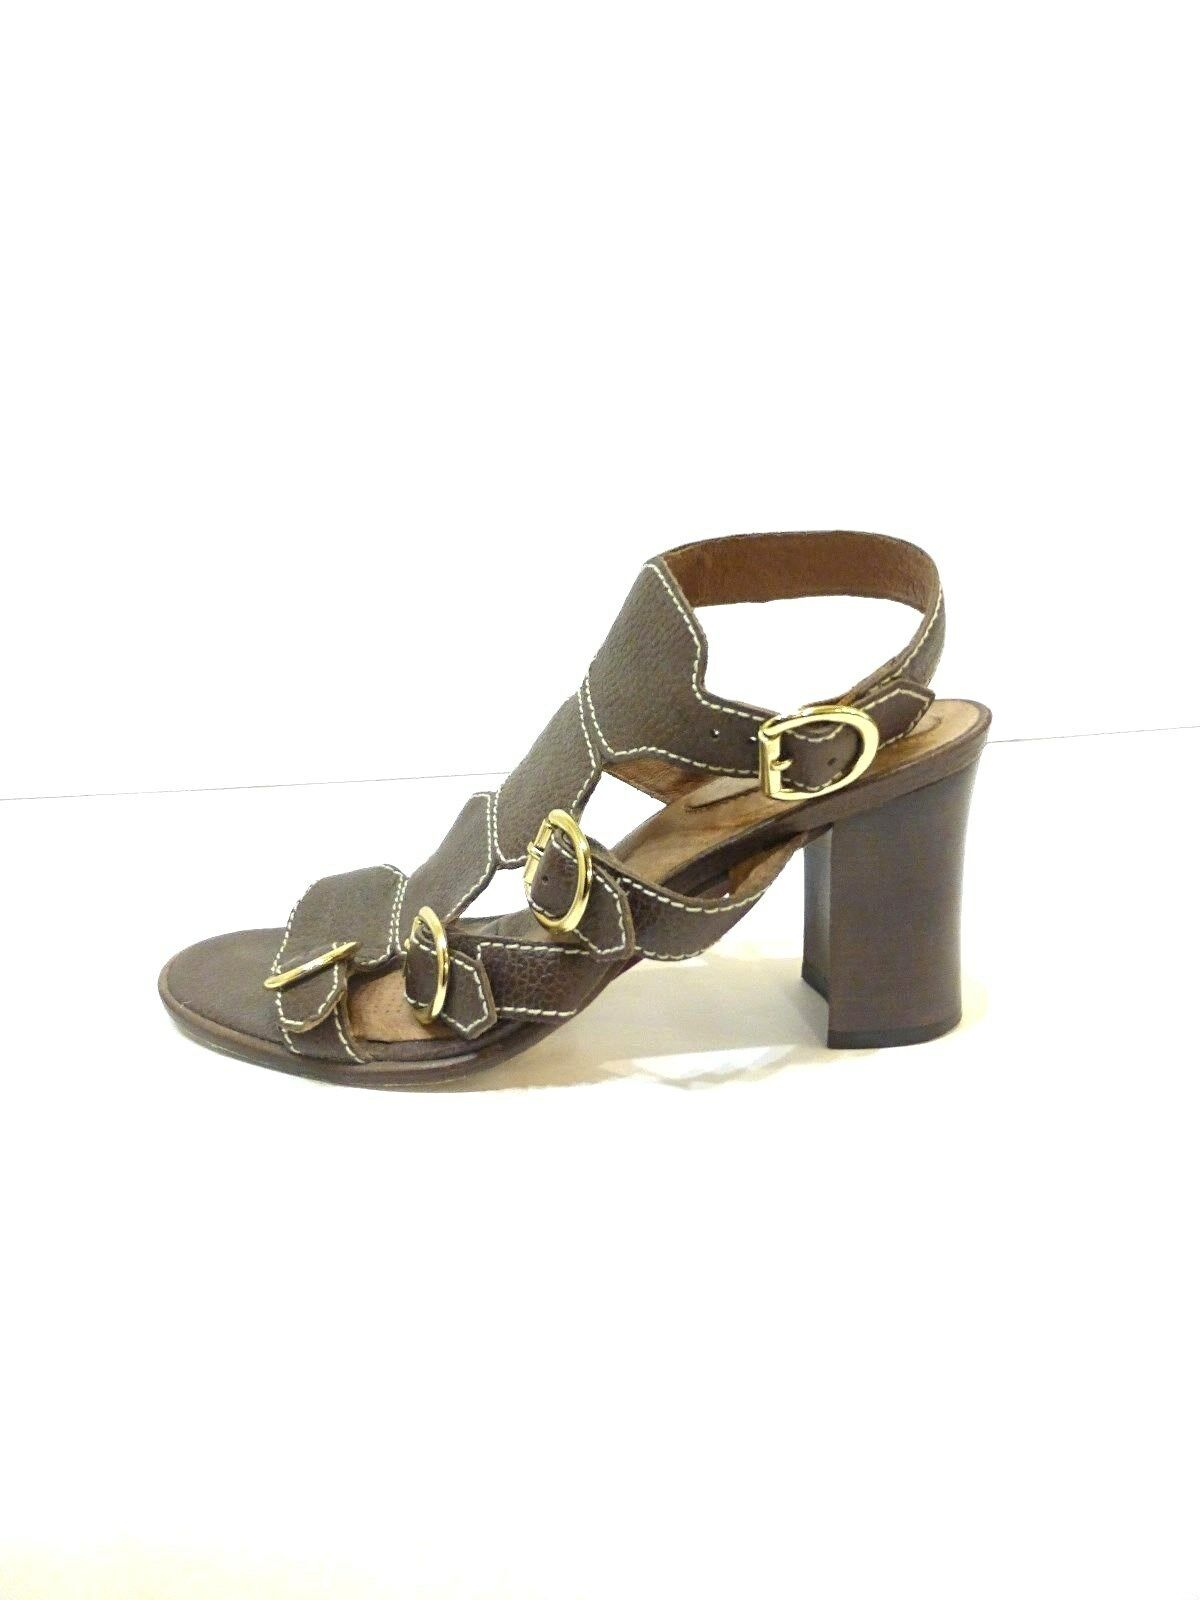 Corso Cormo Brown Leather Sandals with buckle detail  sz 8 Euro 38